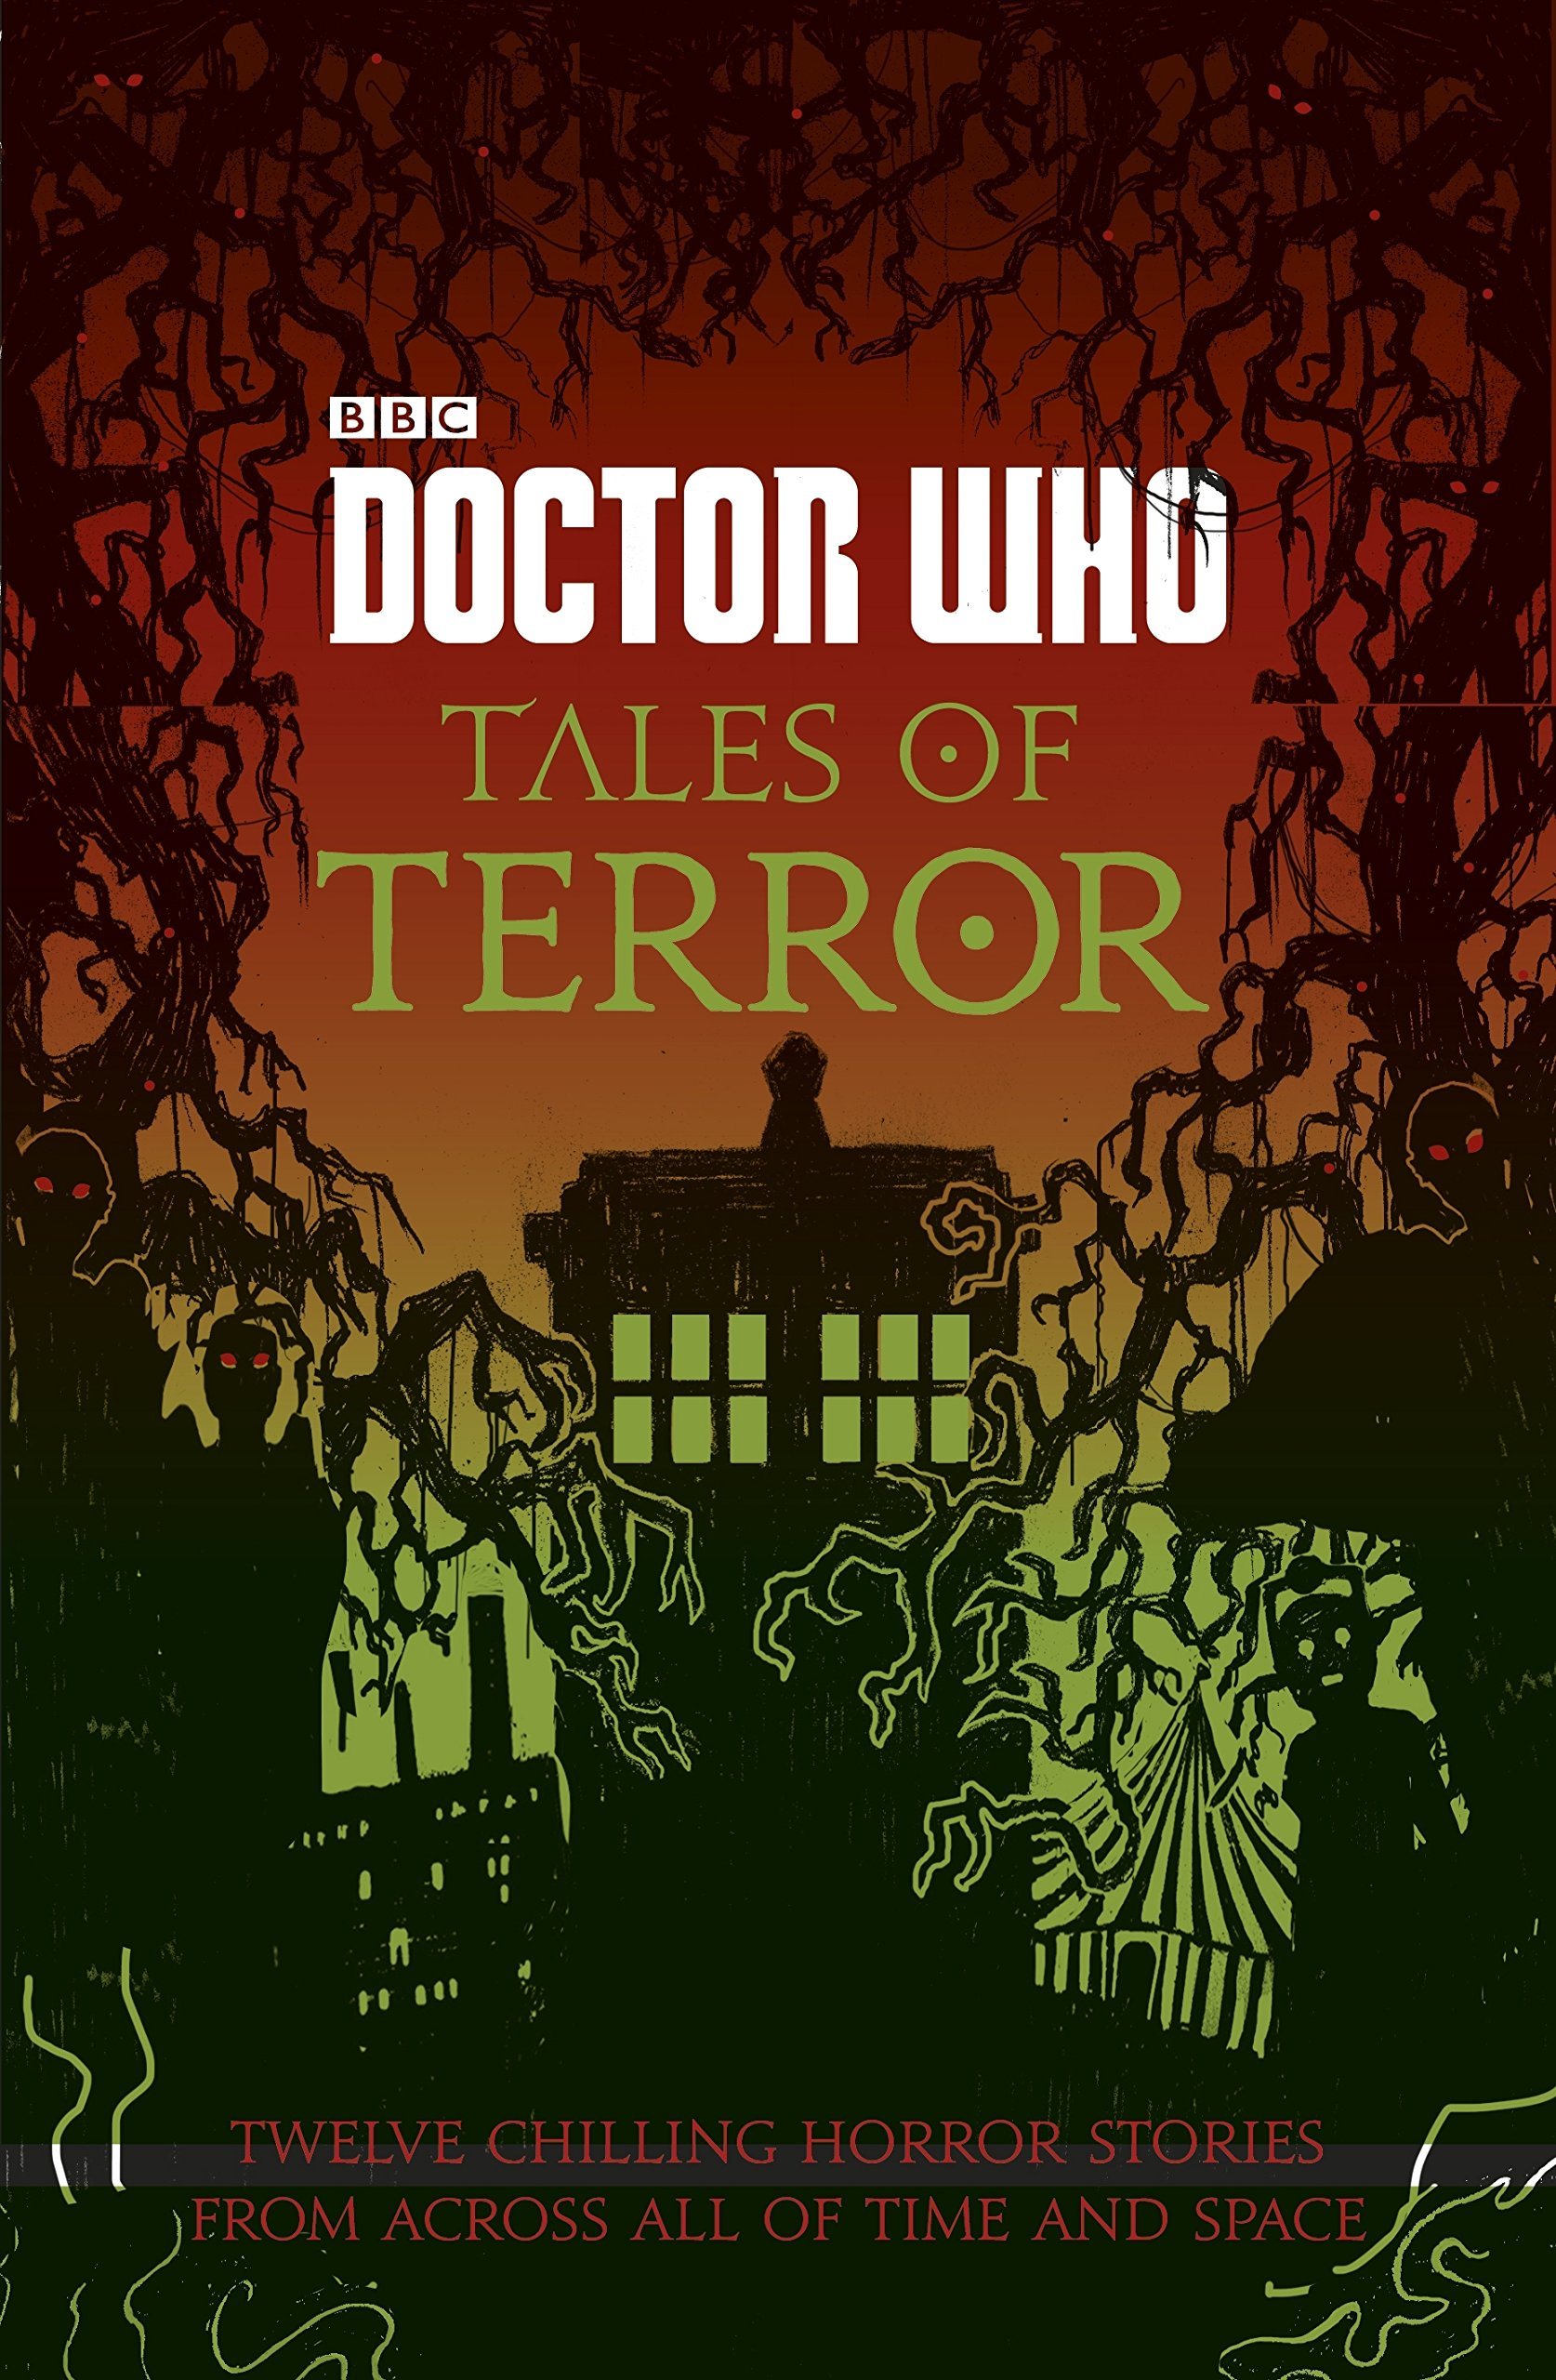 Doctor Who: Tales Of Terror: Amazon.es: Vv.Aa: Libros en idiomas extranjeros